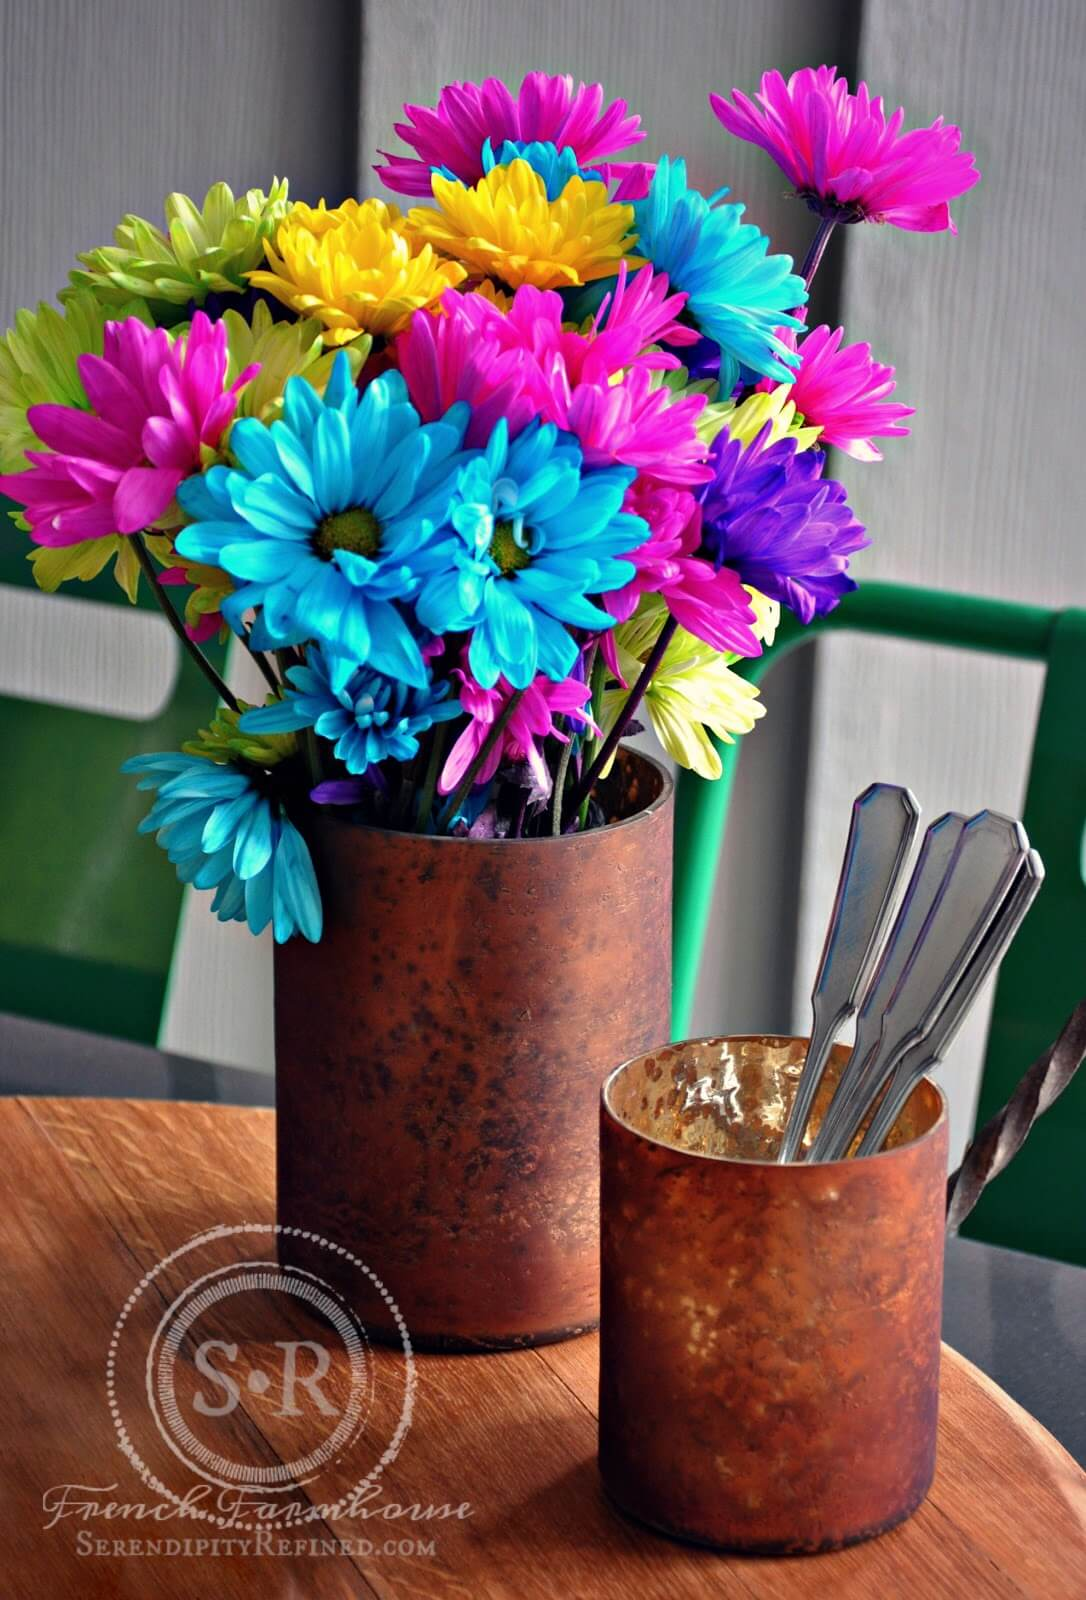 Recycled Copper Kitchen Implement Porch Decor